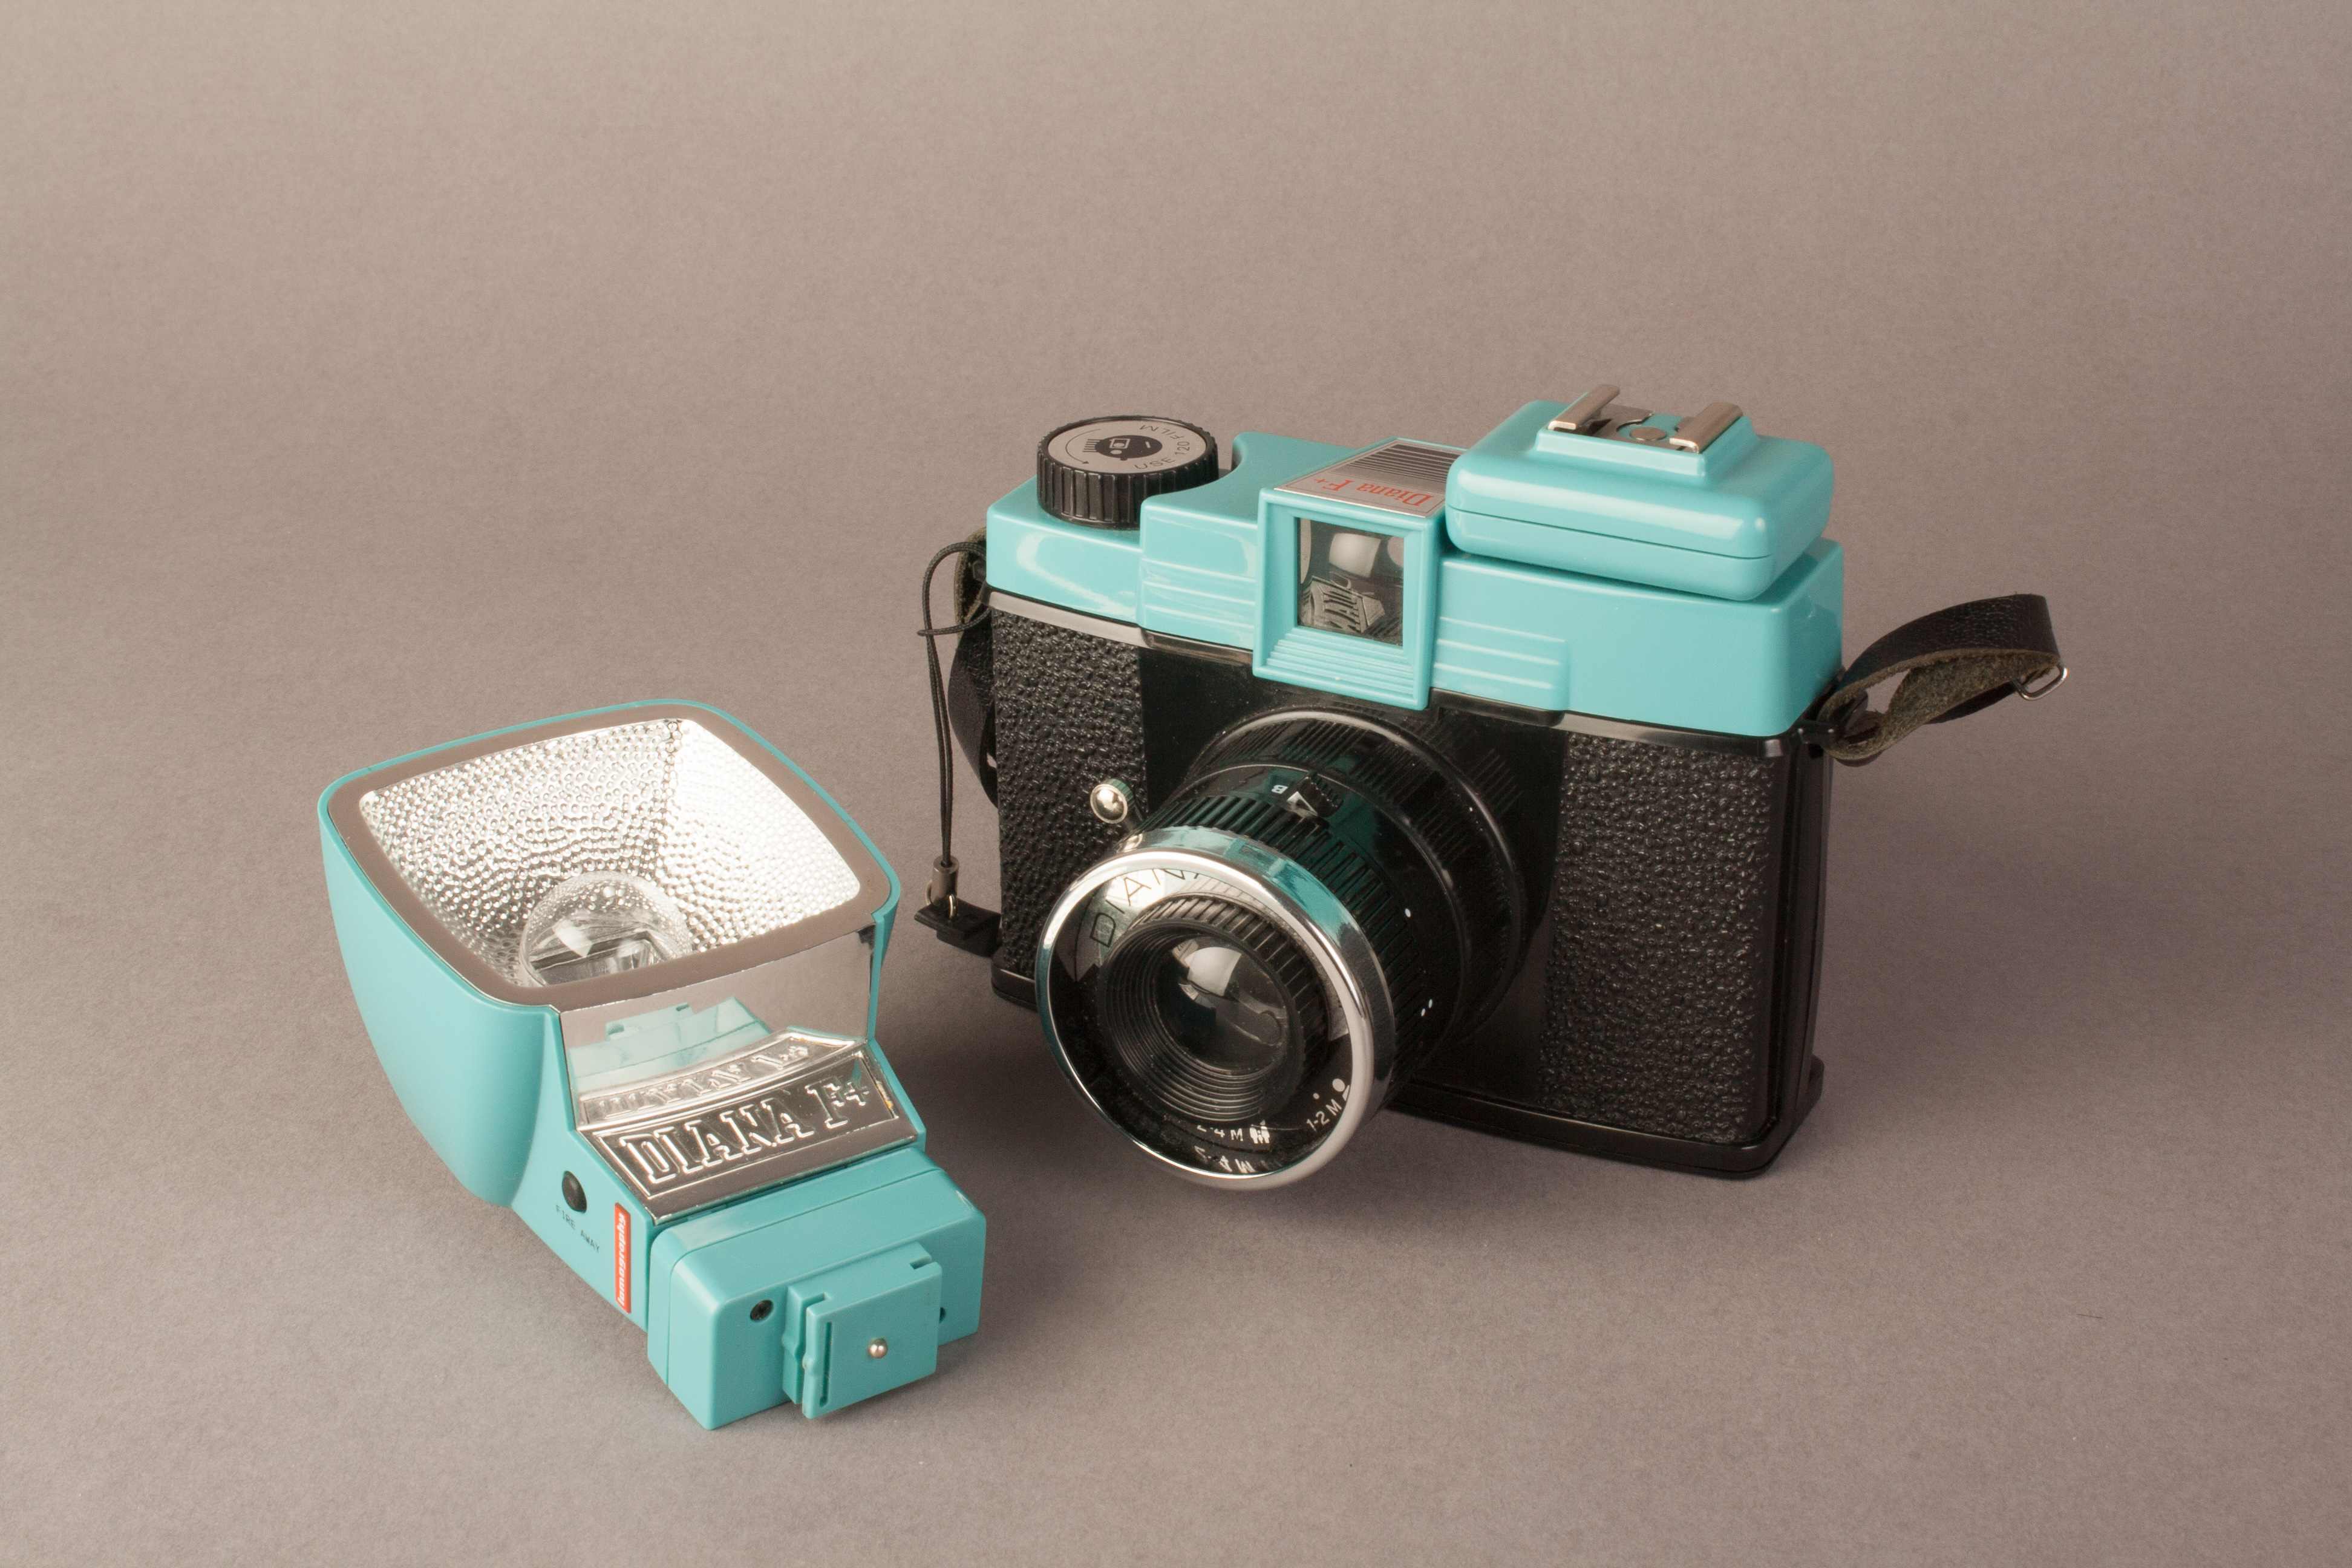 A picture showing the diana F+ with the hot shoe adapter, next to the flash with its own hot shoe adapter